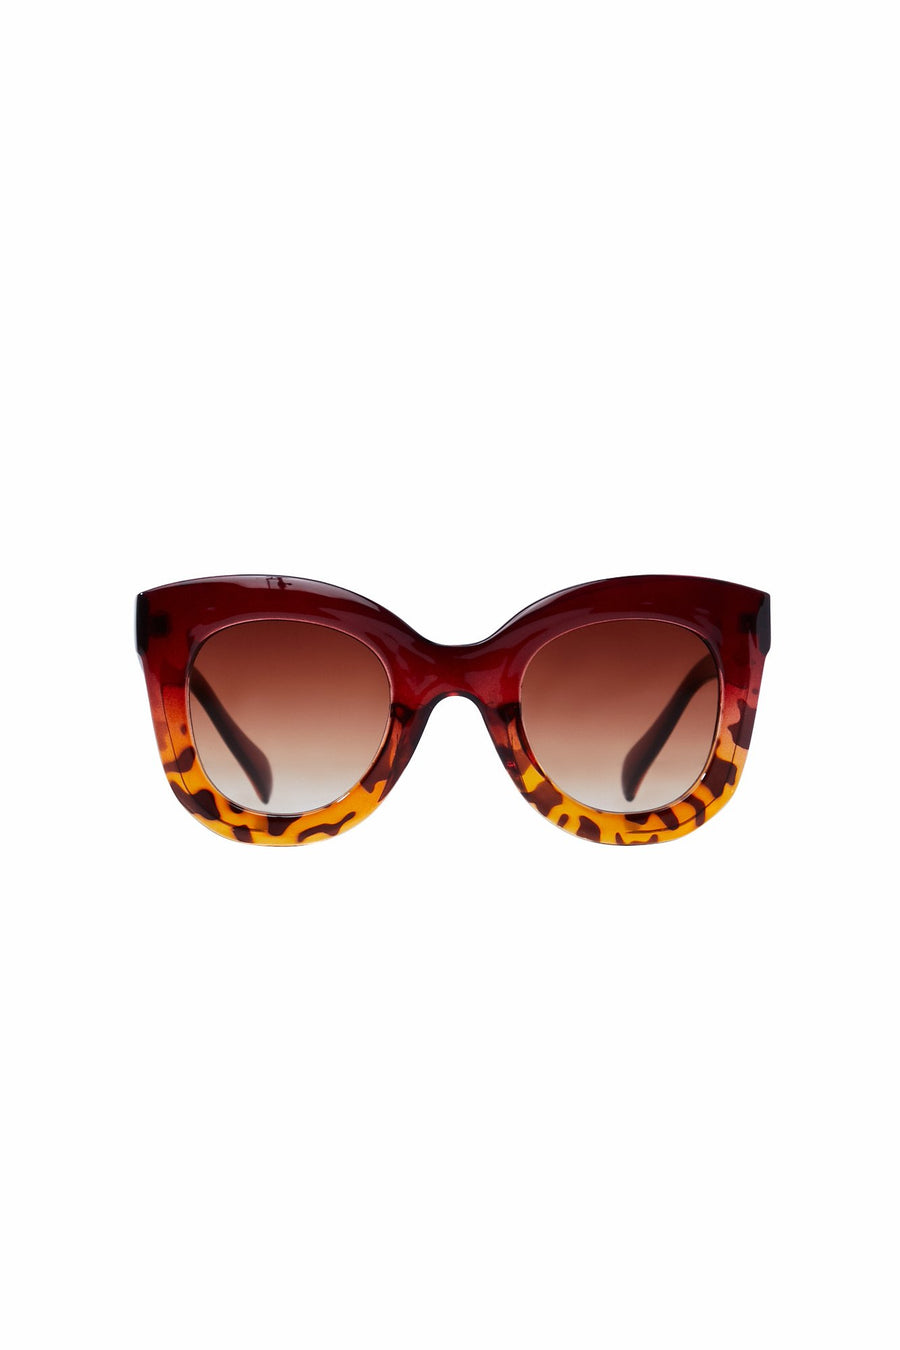 Style And Profile Sunglasses - Brown